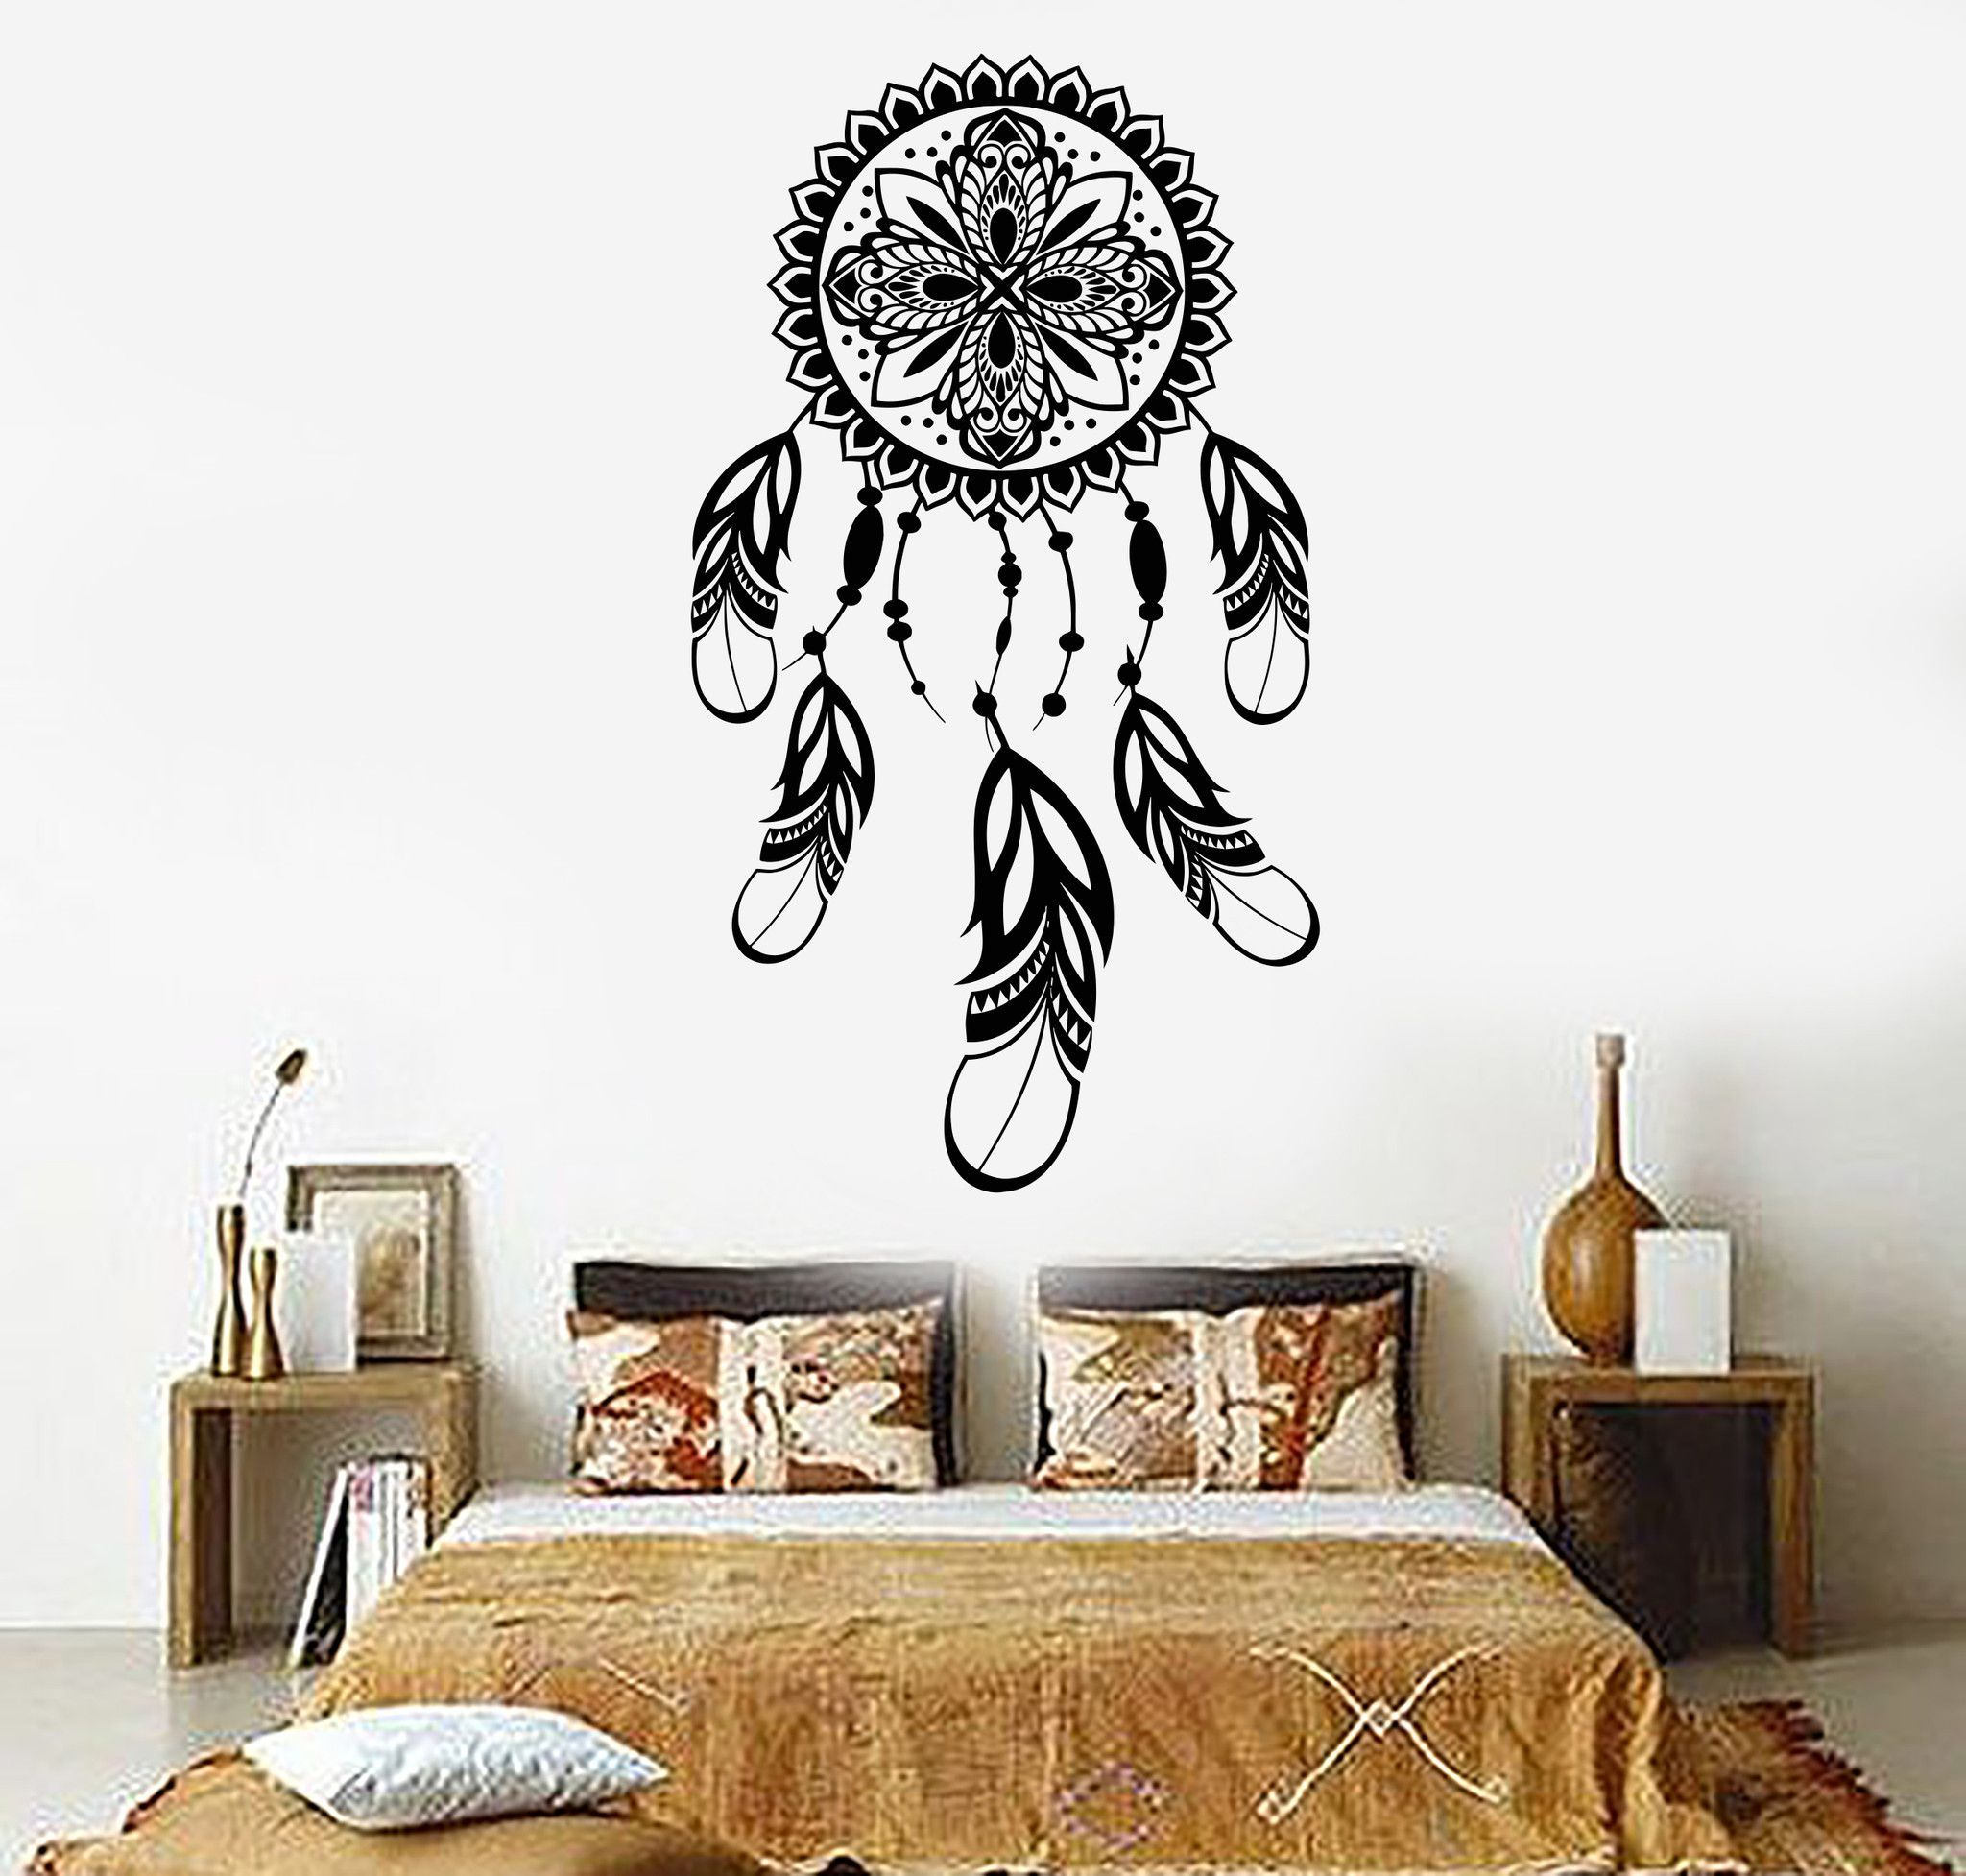 Vinyl wall decal dreamcatcher feathers talisman bedroom stickers